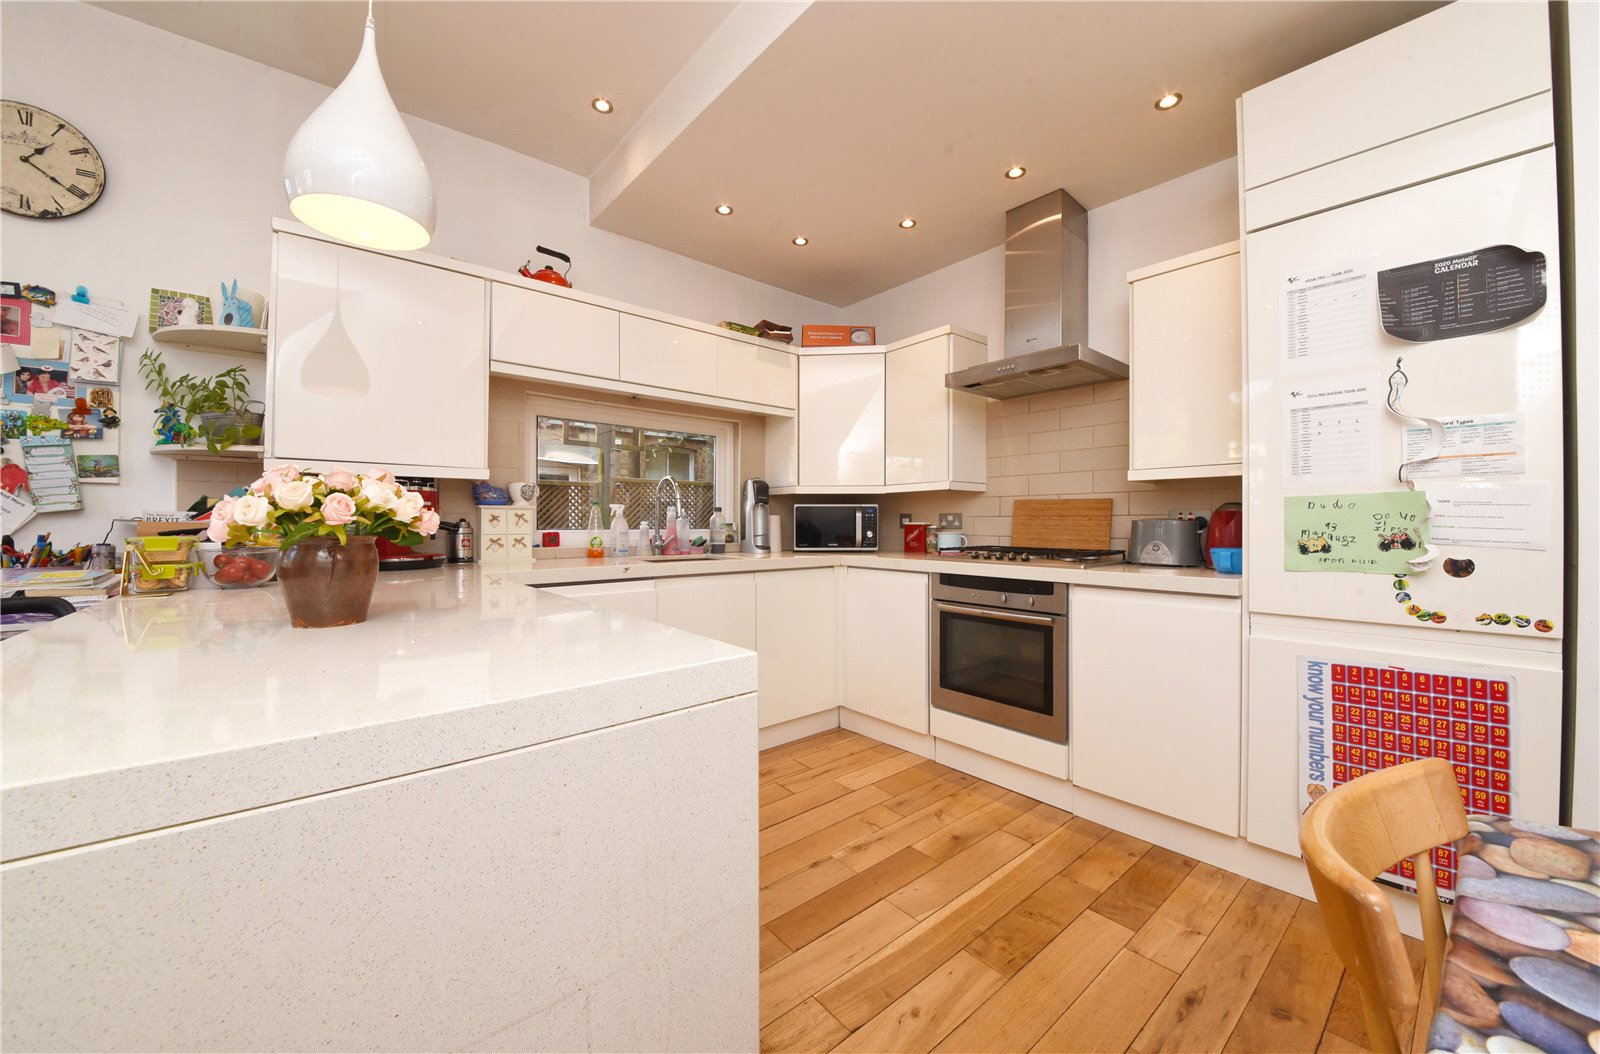 2 bed apartment for sale in East Finchley, N2 0SX 0